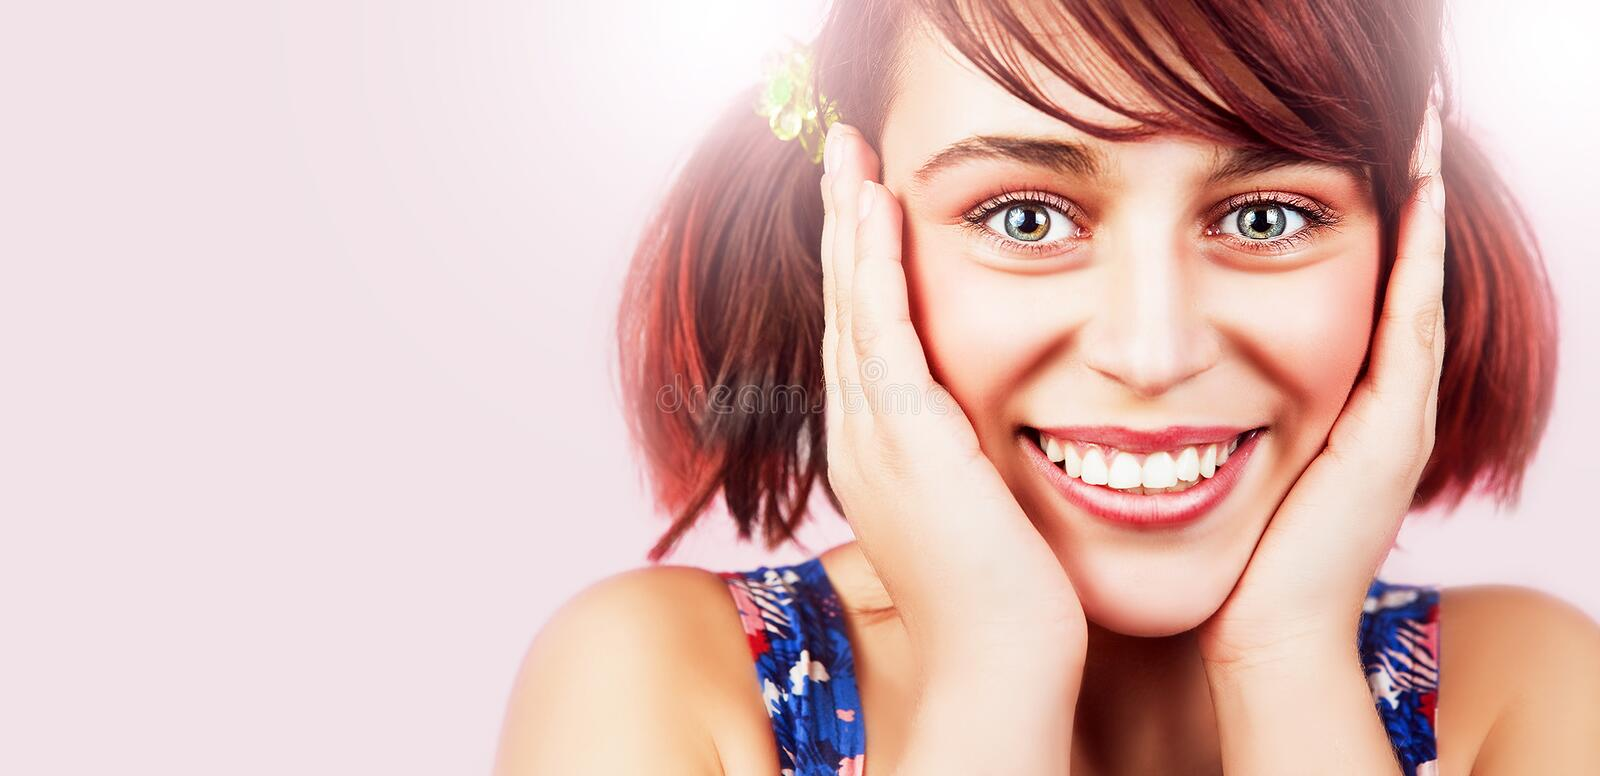 Face of friendly happy teen girl with natural smile stock images